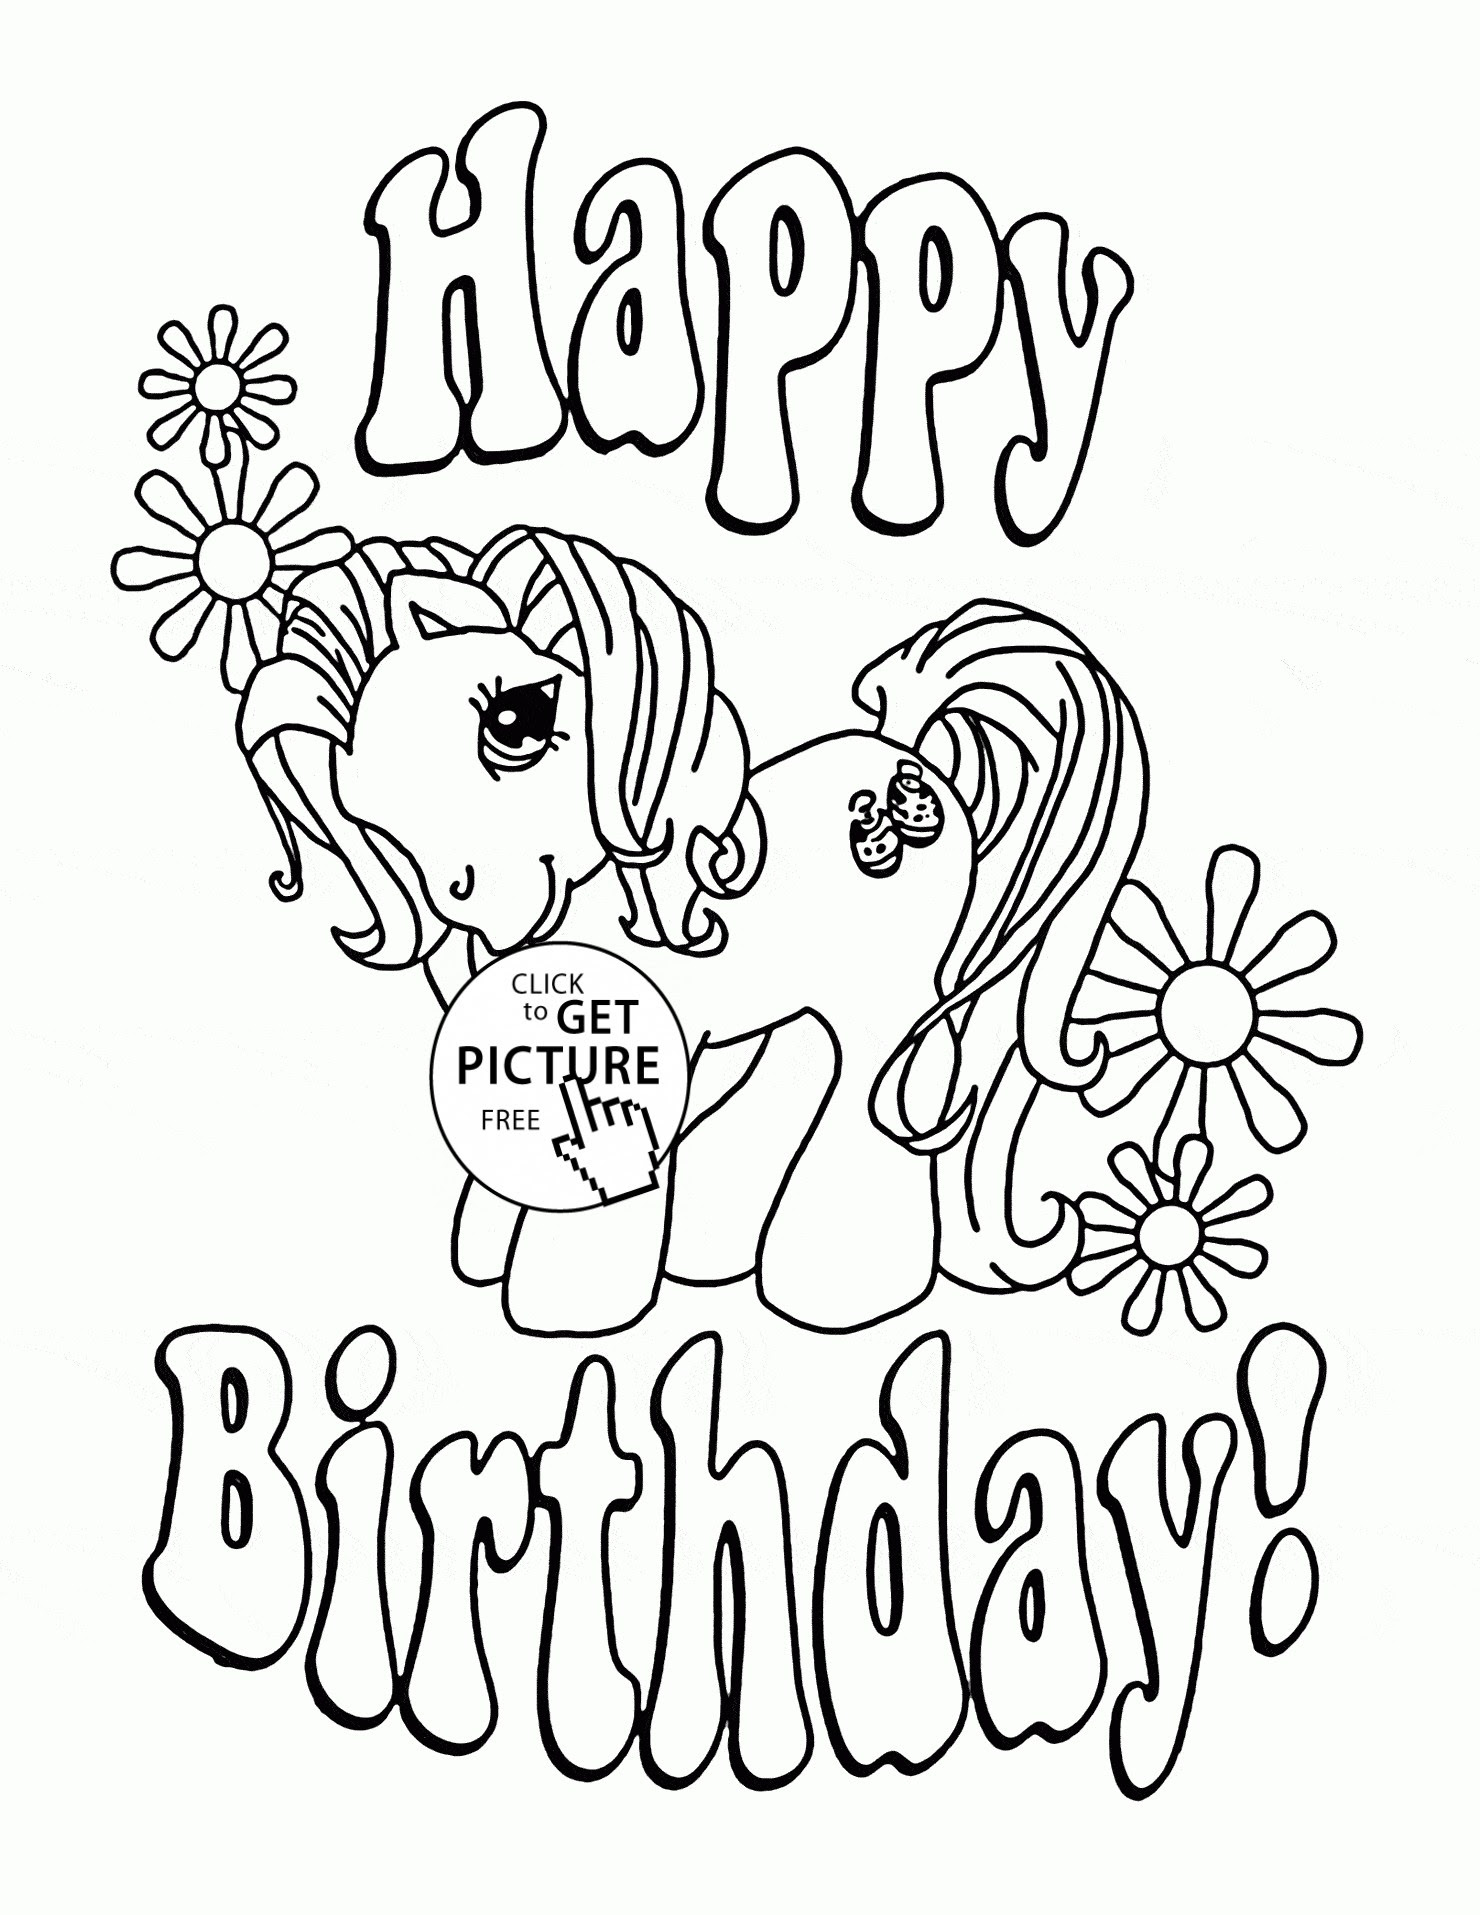 Happy Birthday Grandpa Coloring Page at GetDrawings | Free ...